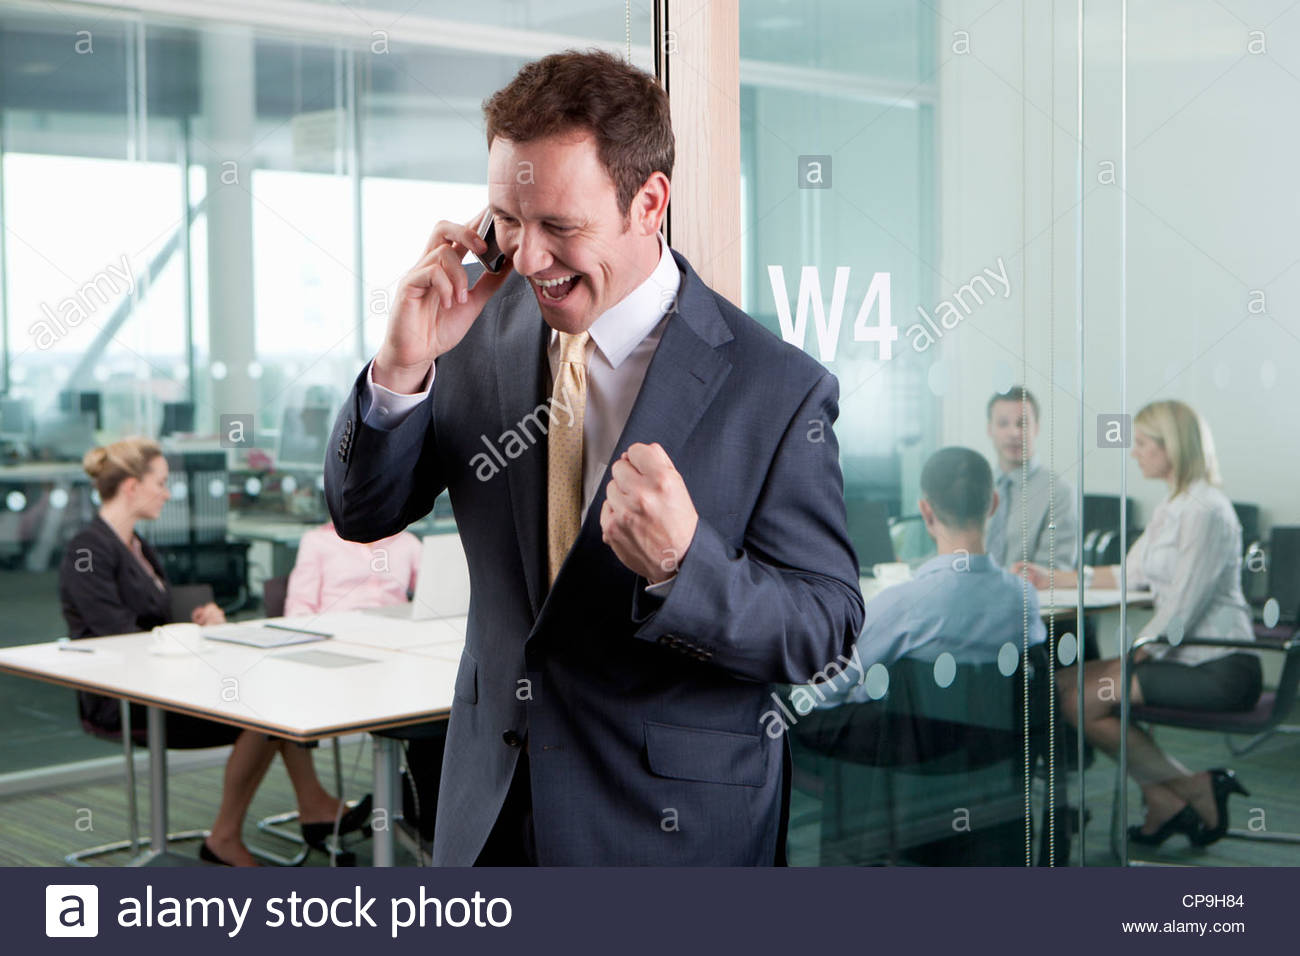 Happy businessman receiving good news on cell phone and gesturing with fist - Stock Image